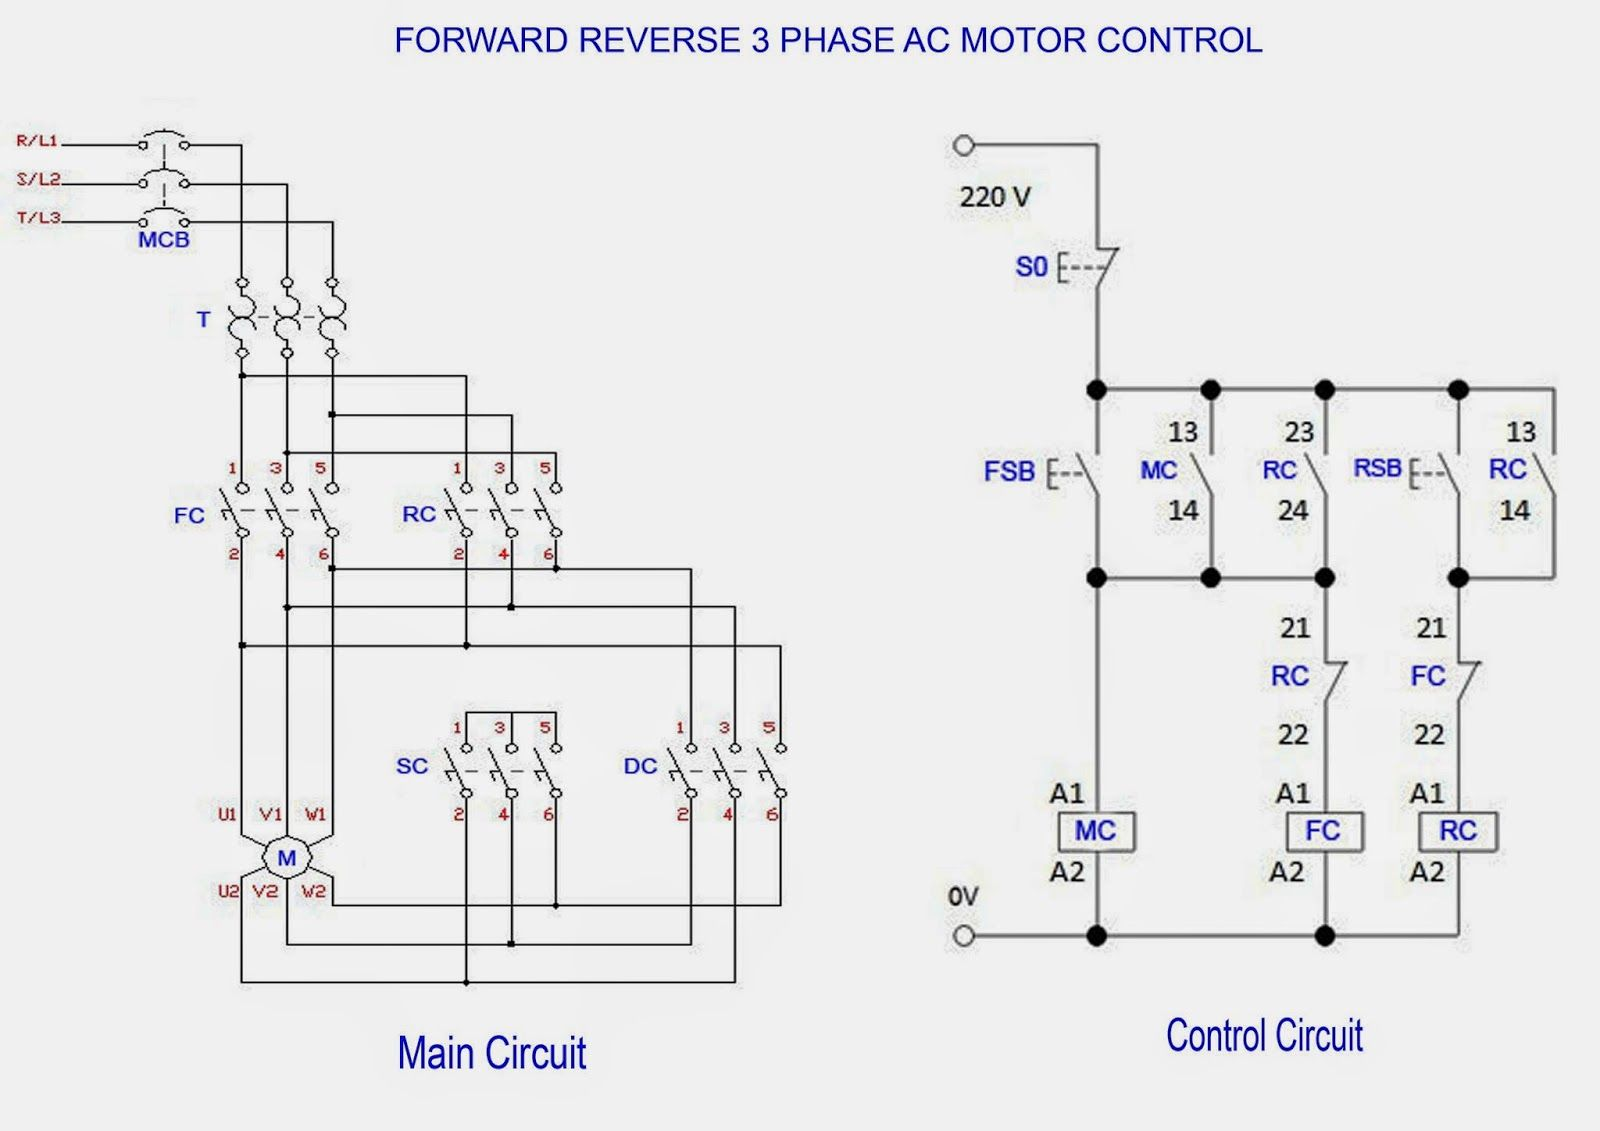 forward reverse 3 phase ac motor control wiring diagram motors in Reversible AC Motor Wiring Diagram